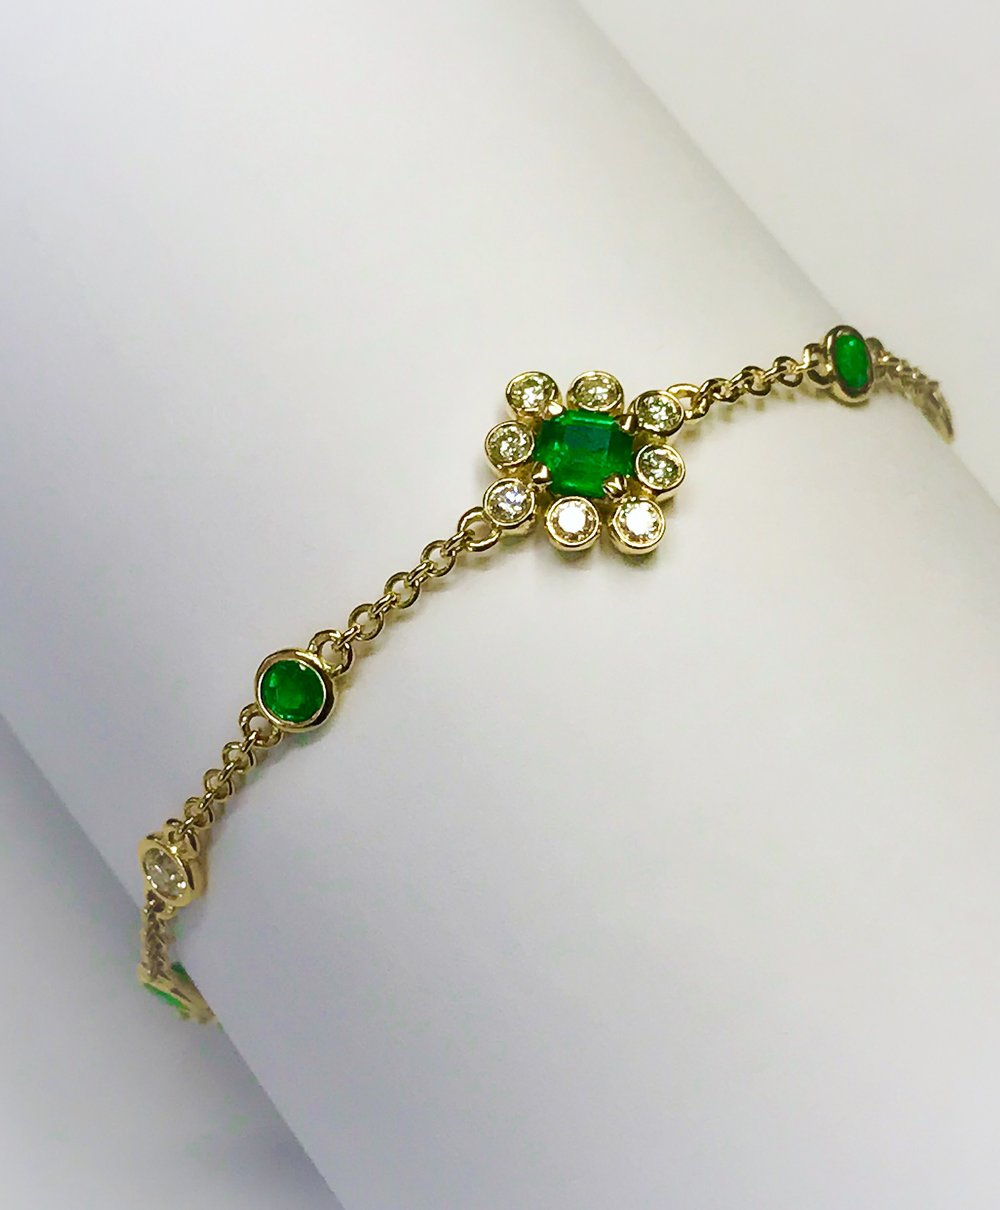 A bespoke commission, alternating Diamond and Emerald rub over set bracelet with feature Emerald and Diamond floral cluster set equal distance apart. Made in Chichester, England.